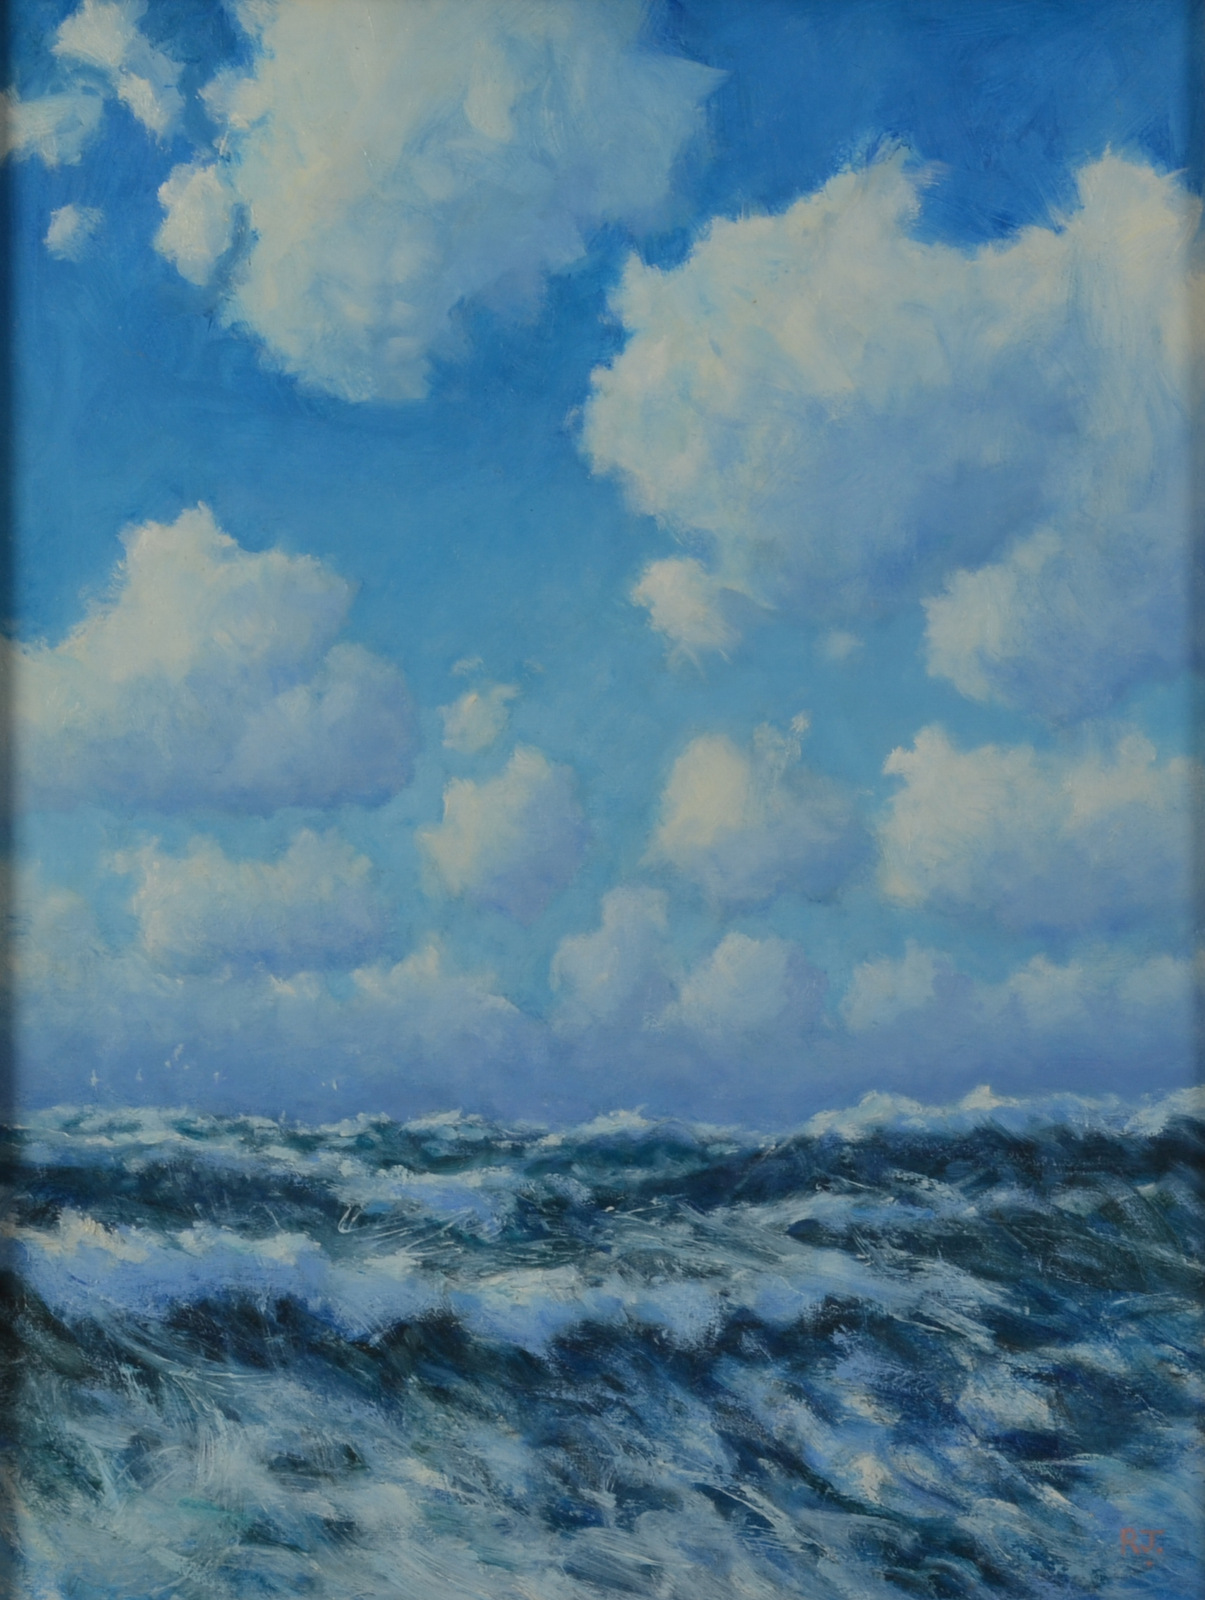 Lot 3 - ROBERT JONES Sea and Clouds Oil on Canvas laid down Signed Dated and titled on the back 2002 55 x